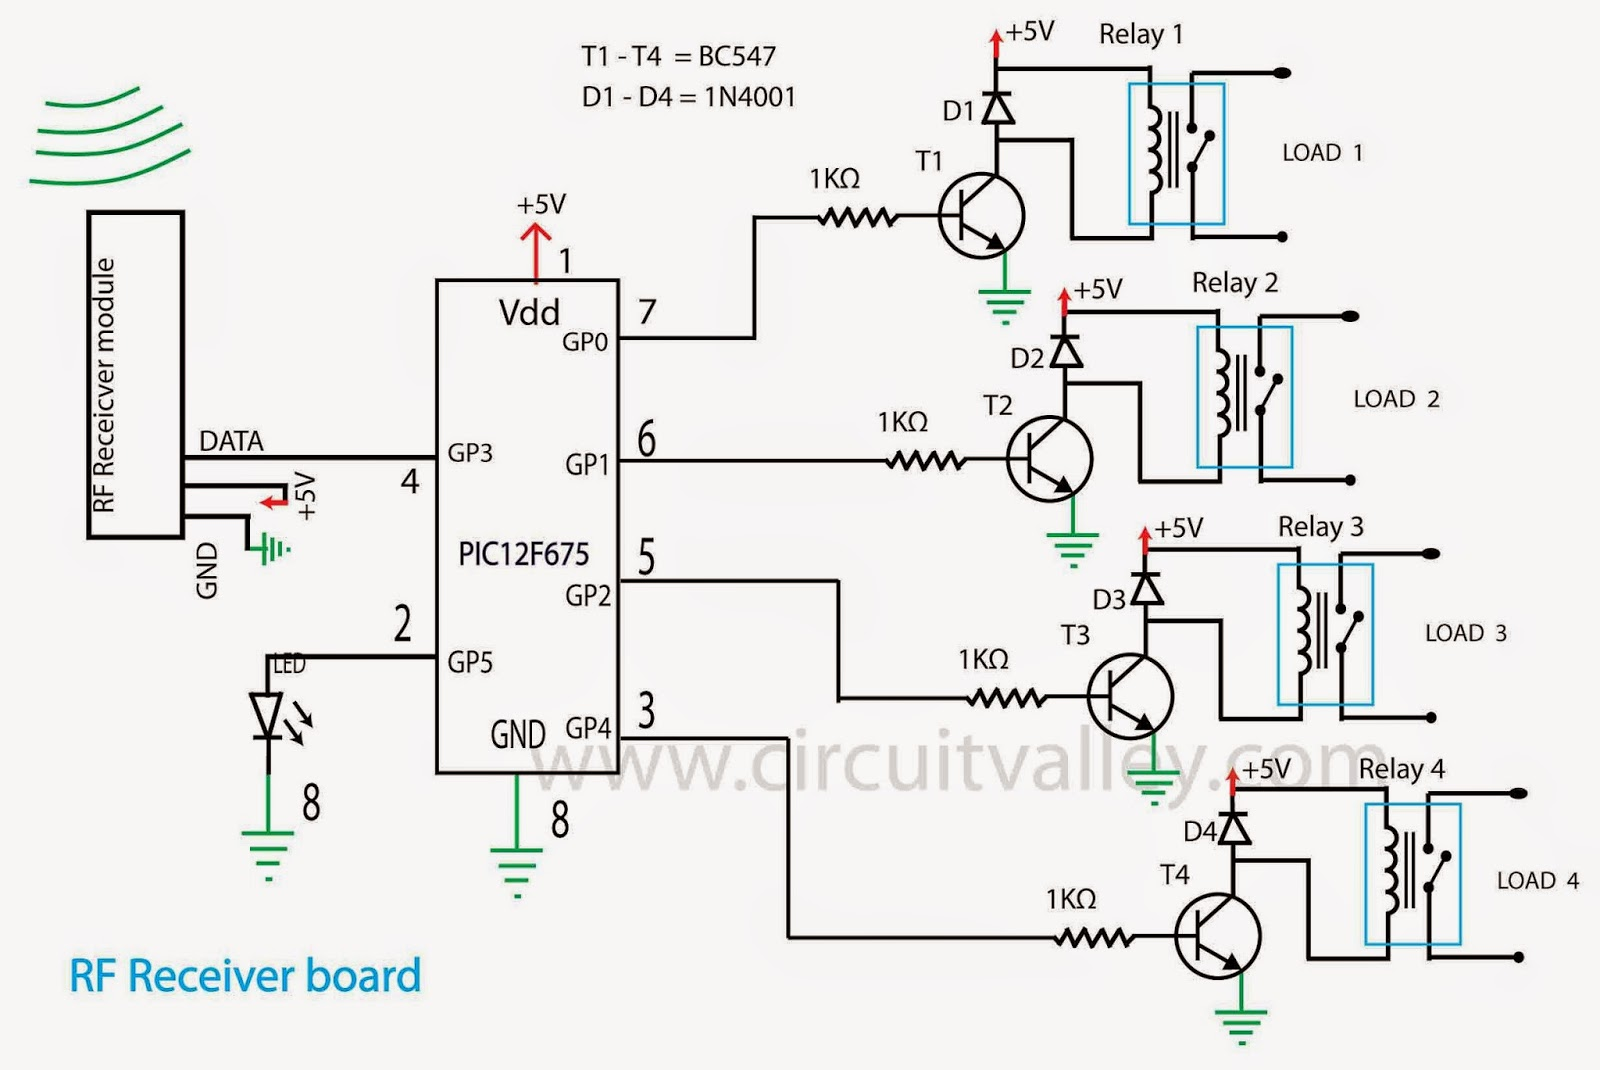 medium resolution of ch rf remote control auto electrical wiring diagram embedded engineering low cost rf control 4 channel